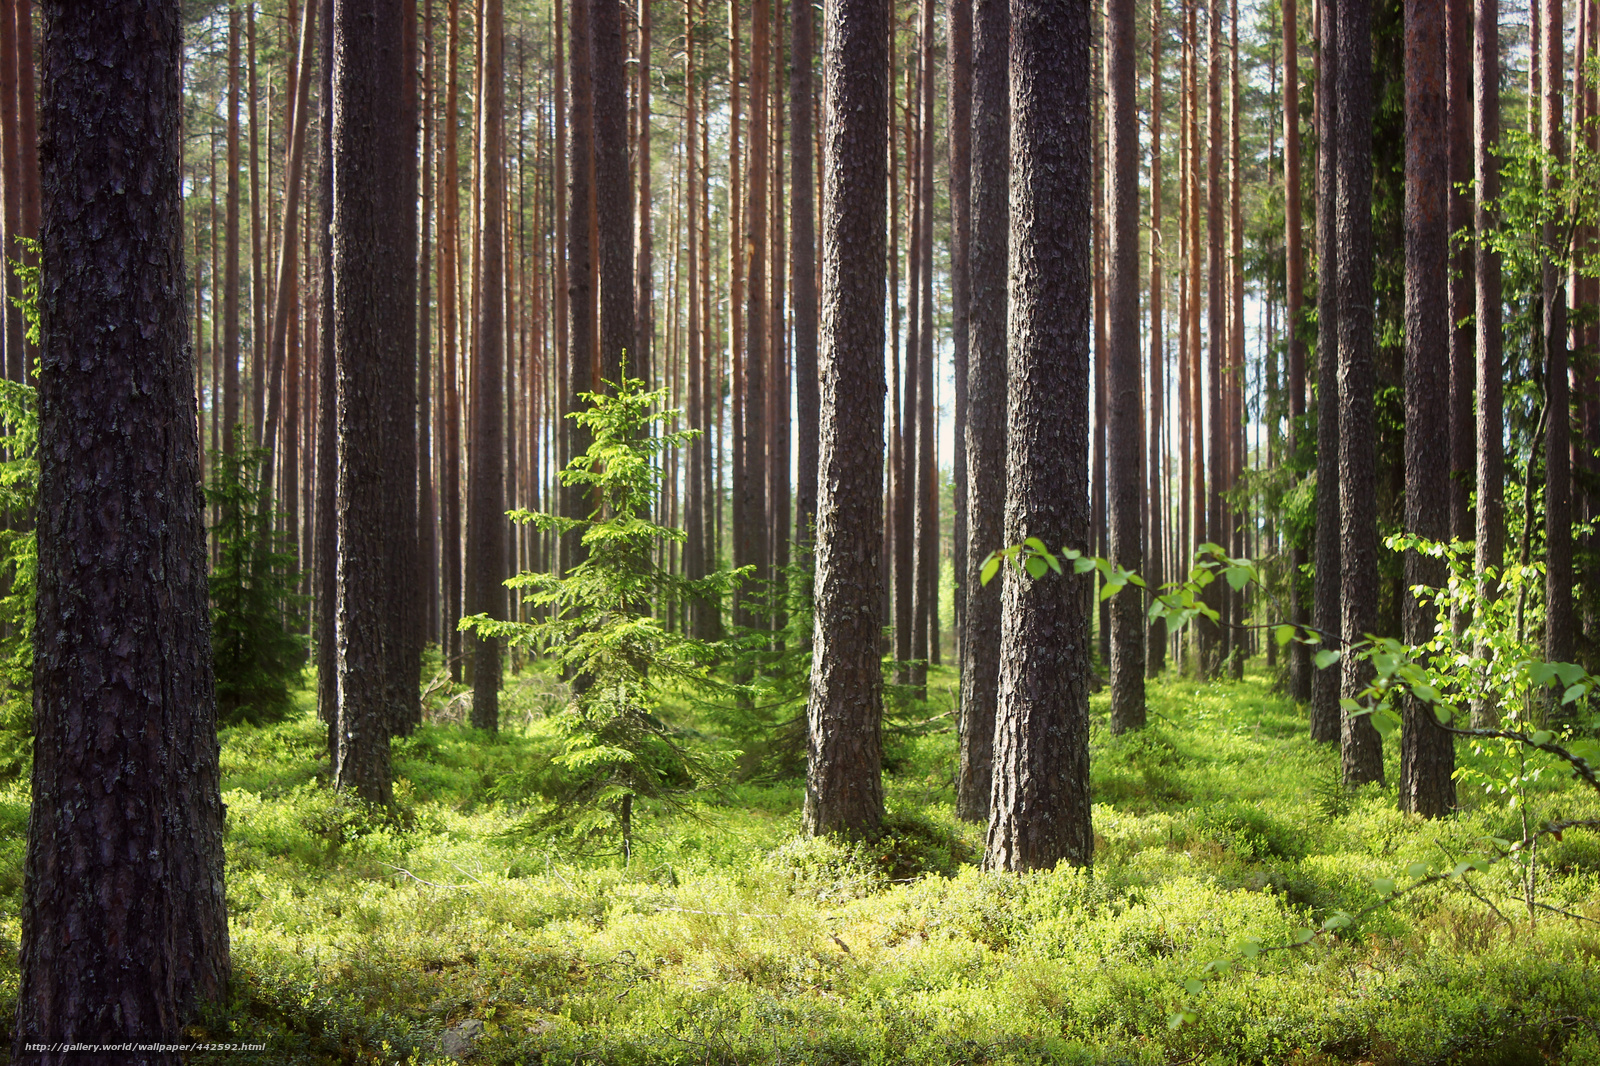 wallpaper trees forest wallpapersafaridownload wallpaper trees forest tree desktop wallpaper in the 1600x1066